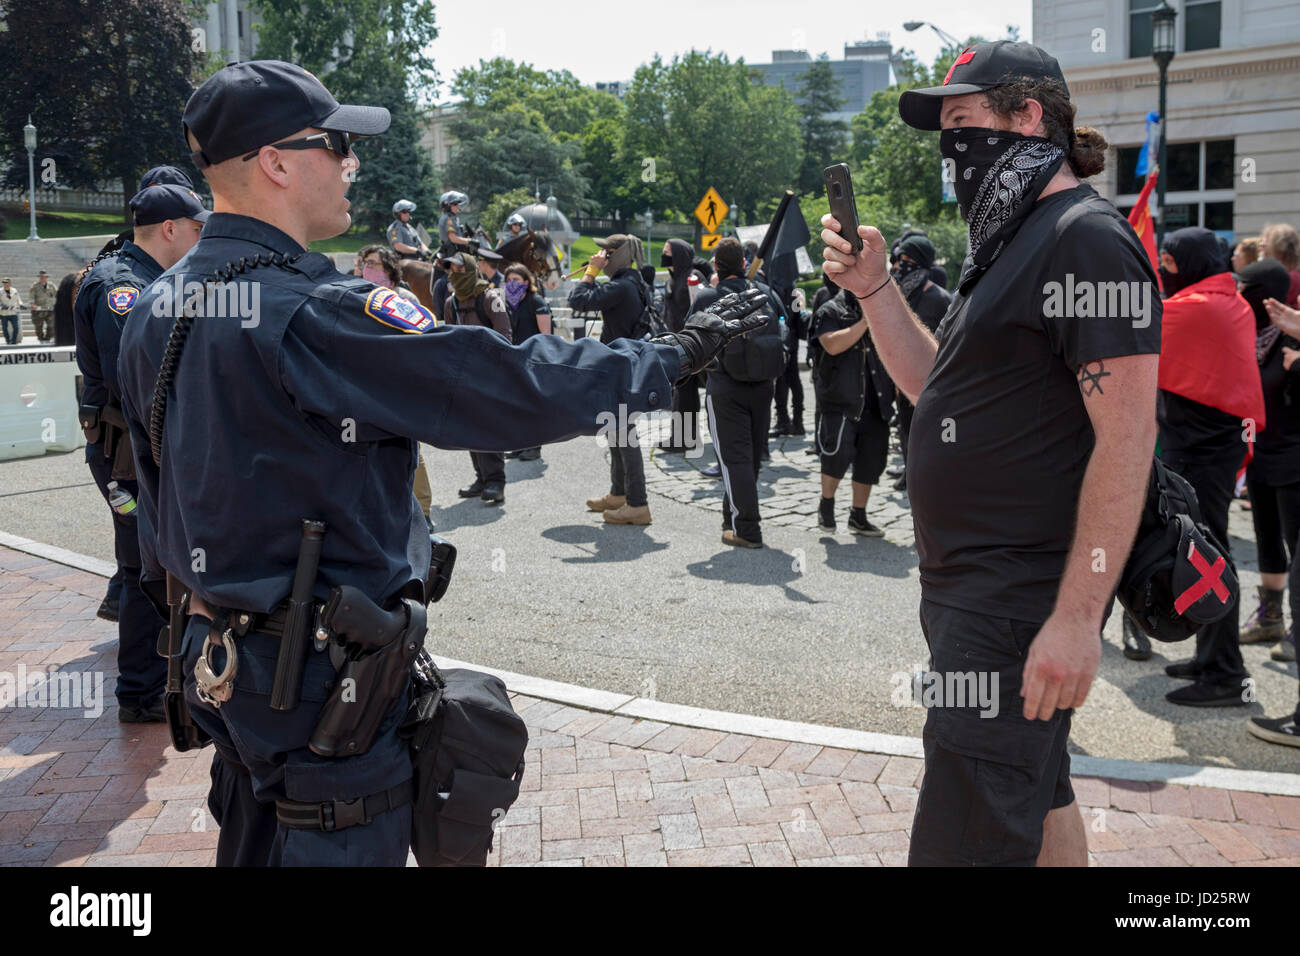 Harrisburg, Pennsylvania - A Black Bloc anarchist films a police officer during the Bloc's counter-demonstration - Stock Image